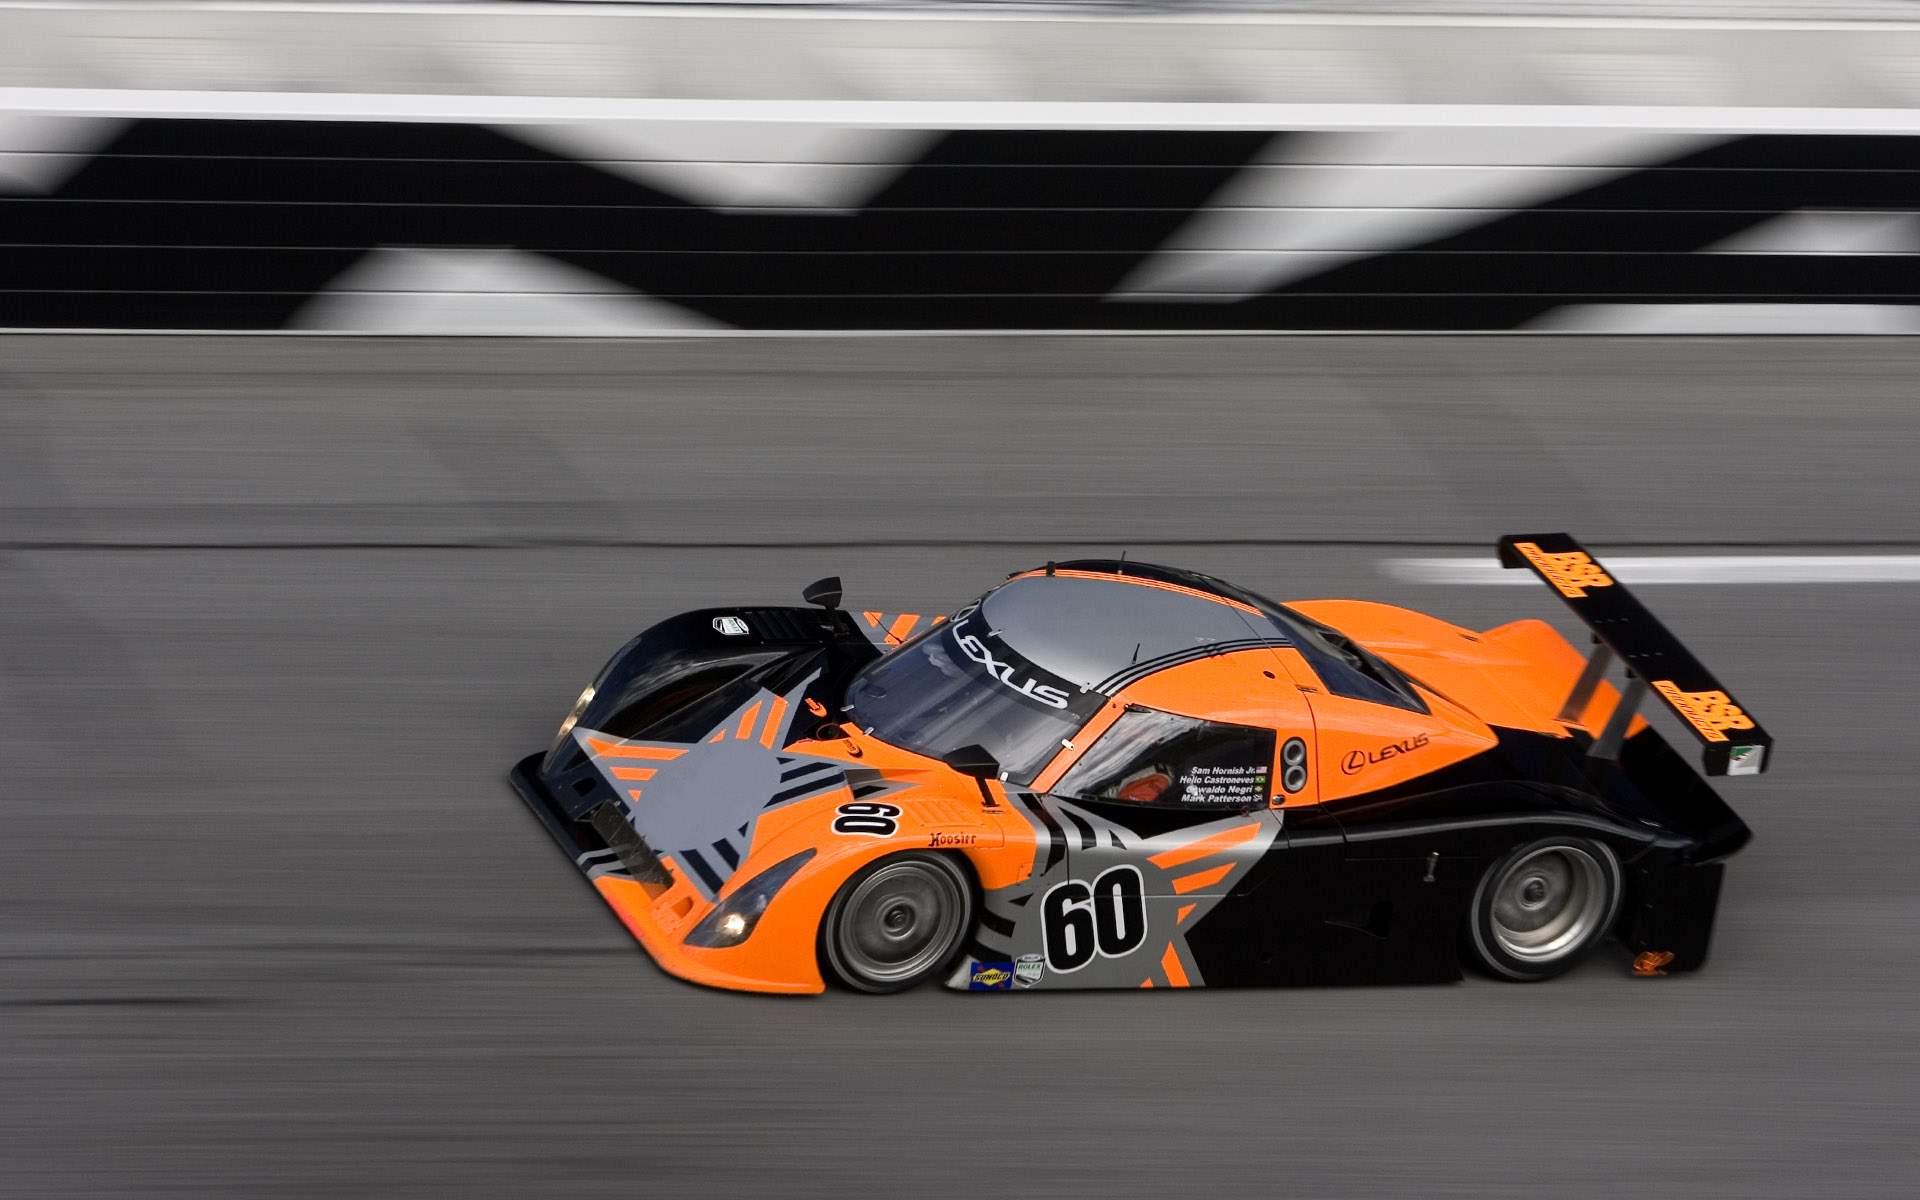 2006 Michael Shank Racing Riley MKXI Daytona Prototype Livery